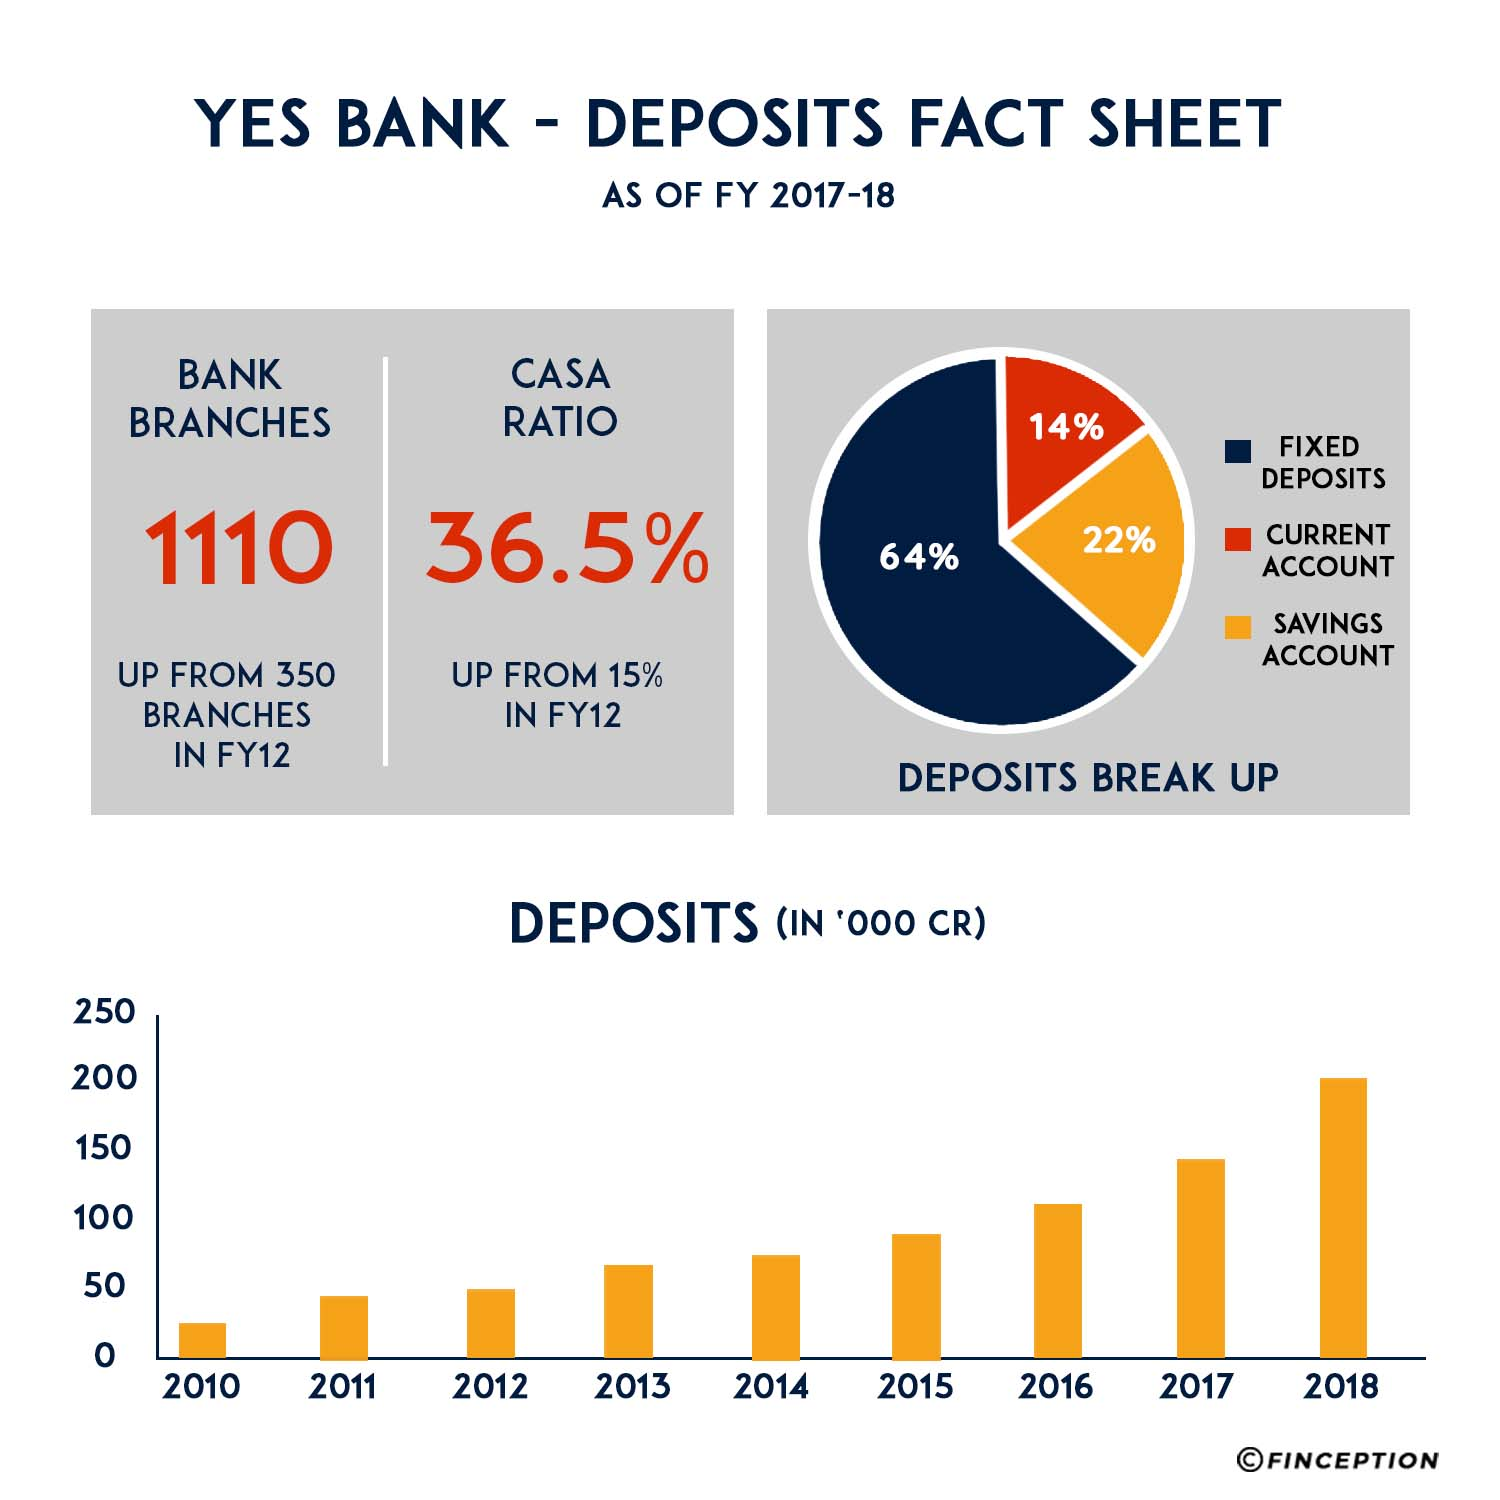 Yes bank deposits as of March 2018